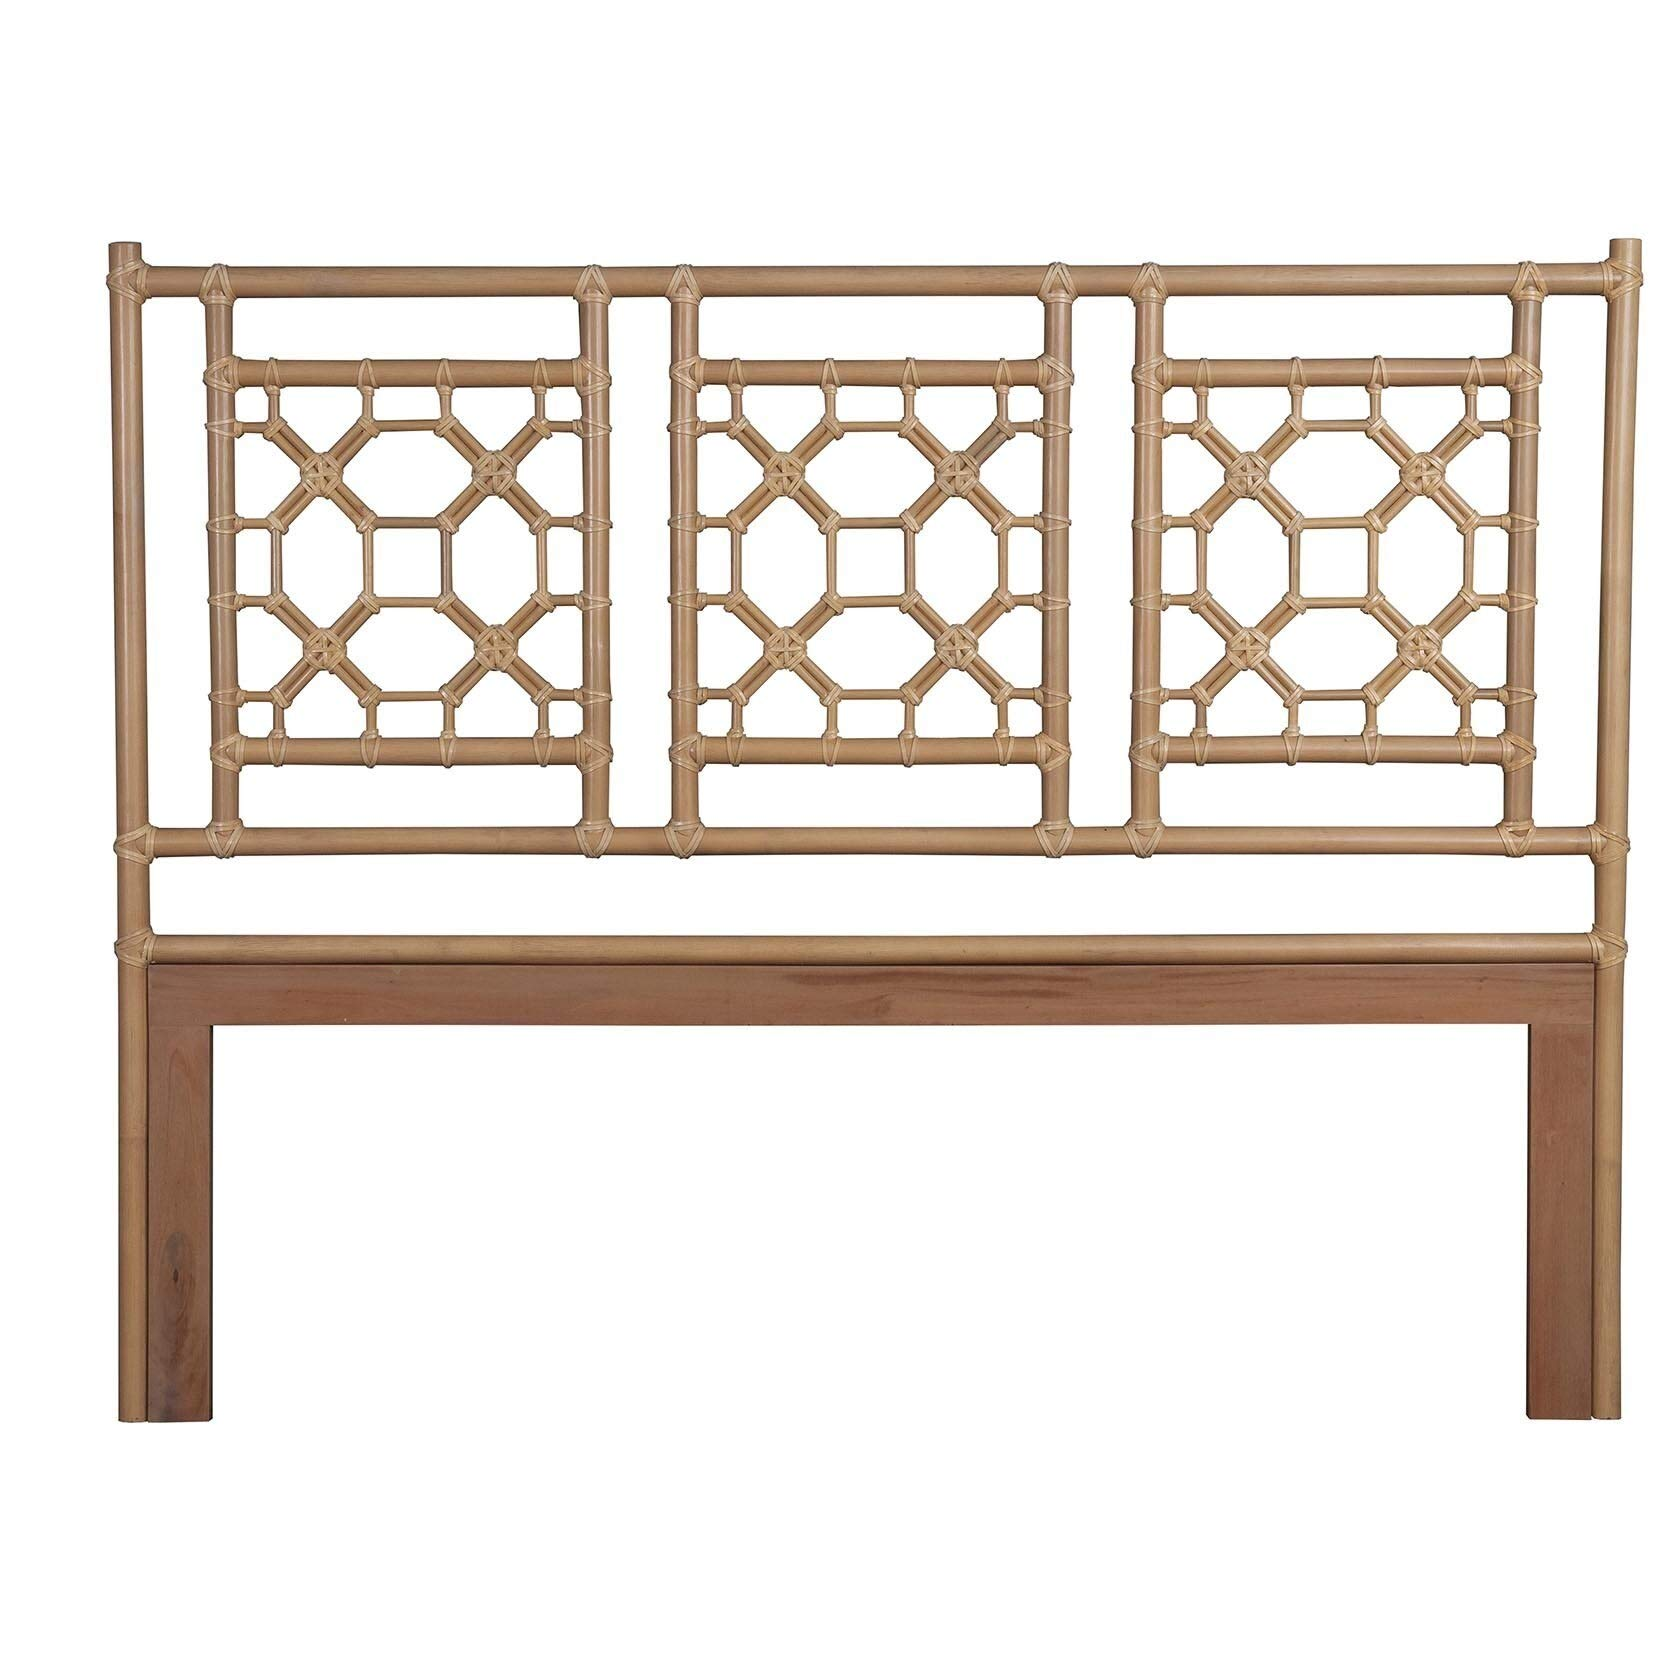 East at Main's Granby Natural Modern Lattice King Headboard Cream Off-White Transitional Rattan Wood Reclaimed Textured Finish by Unknown